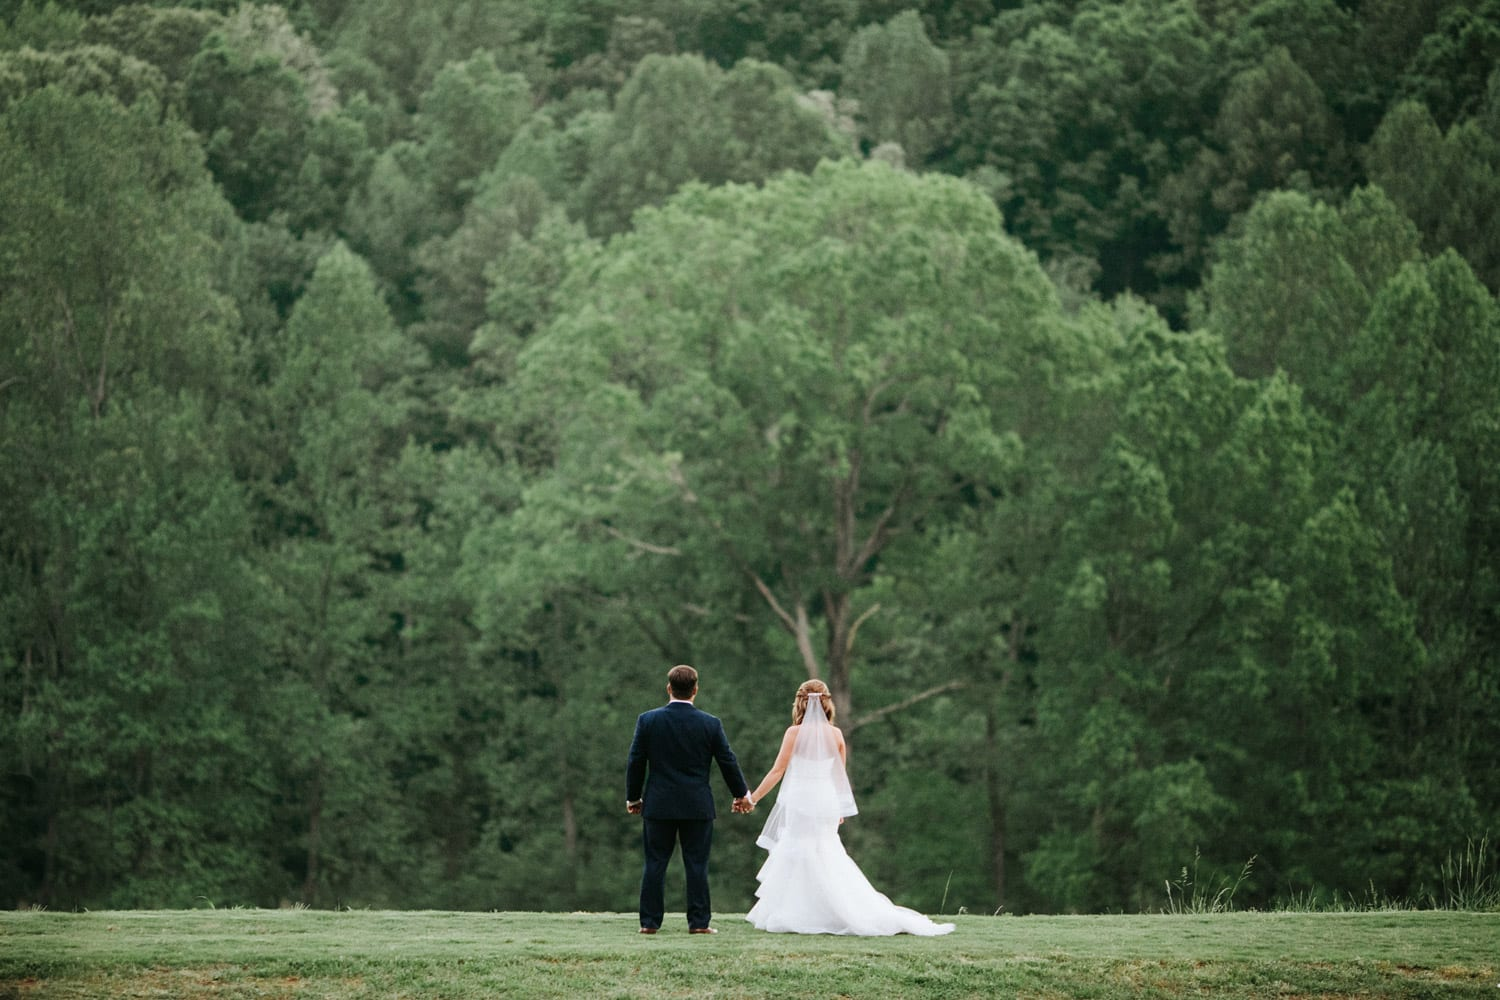 Bride and groom hold hands in front of woods